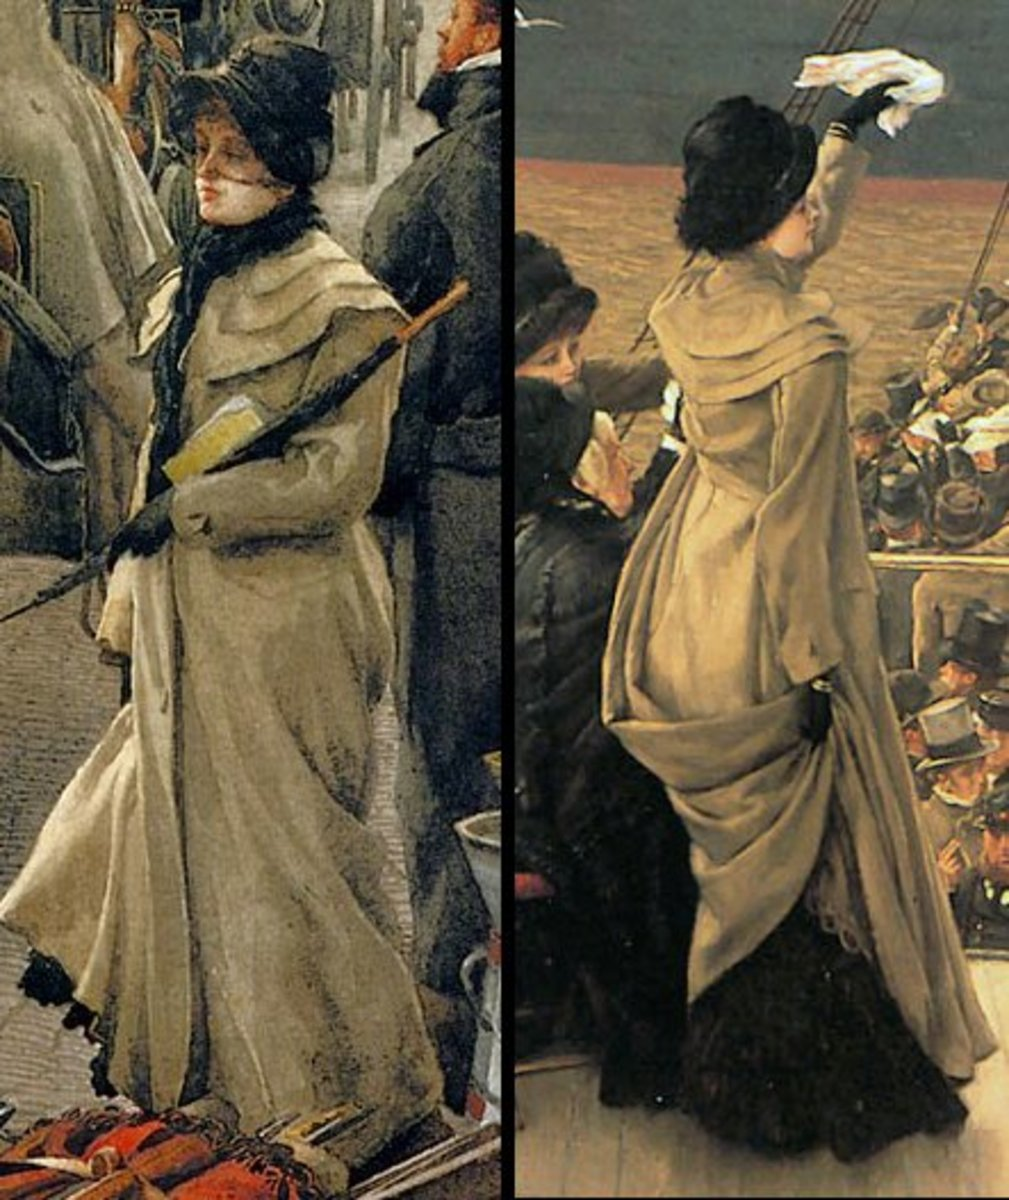 1881 Travel coat from a painting by James Tissot